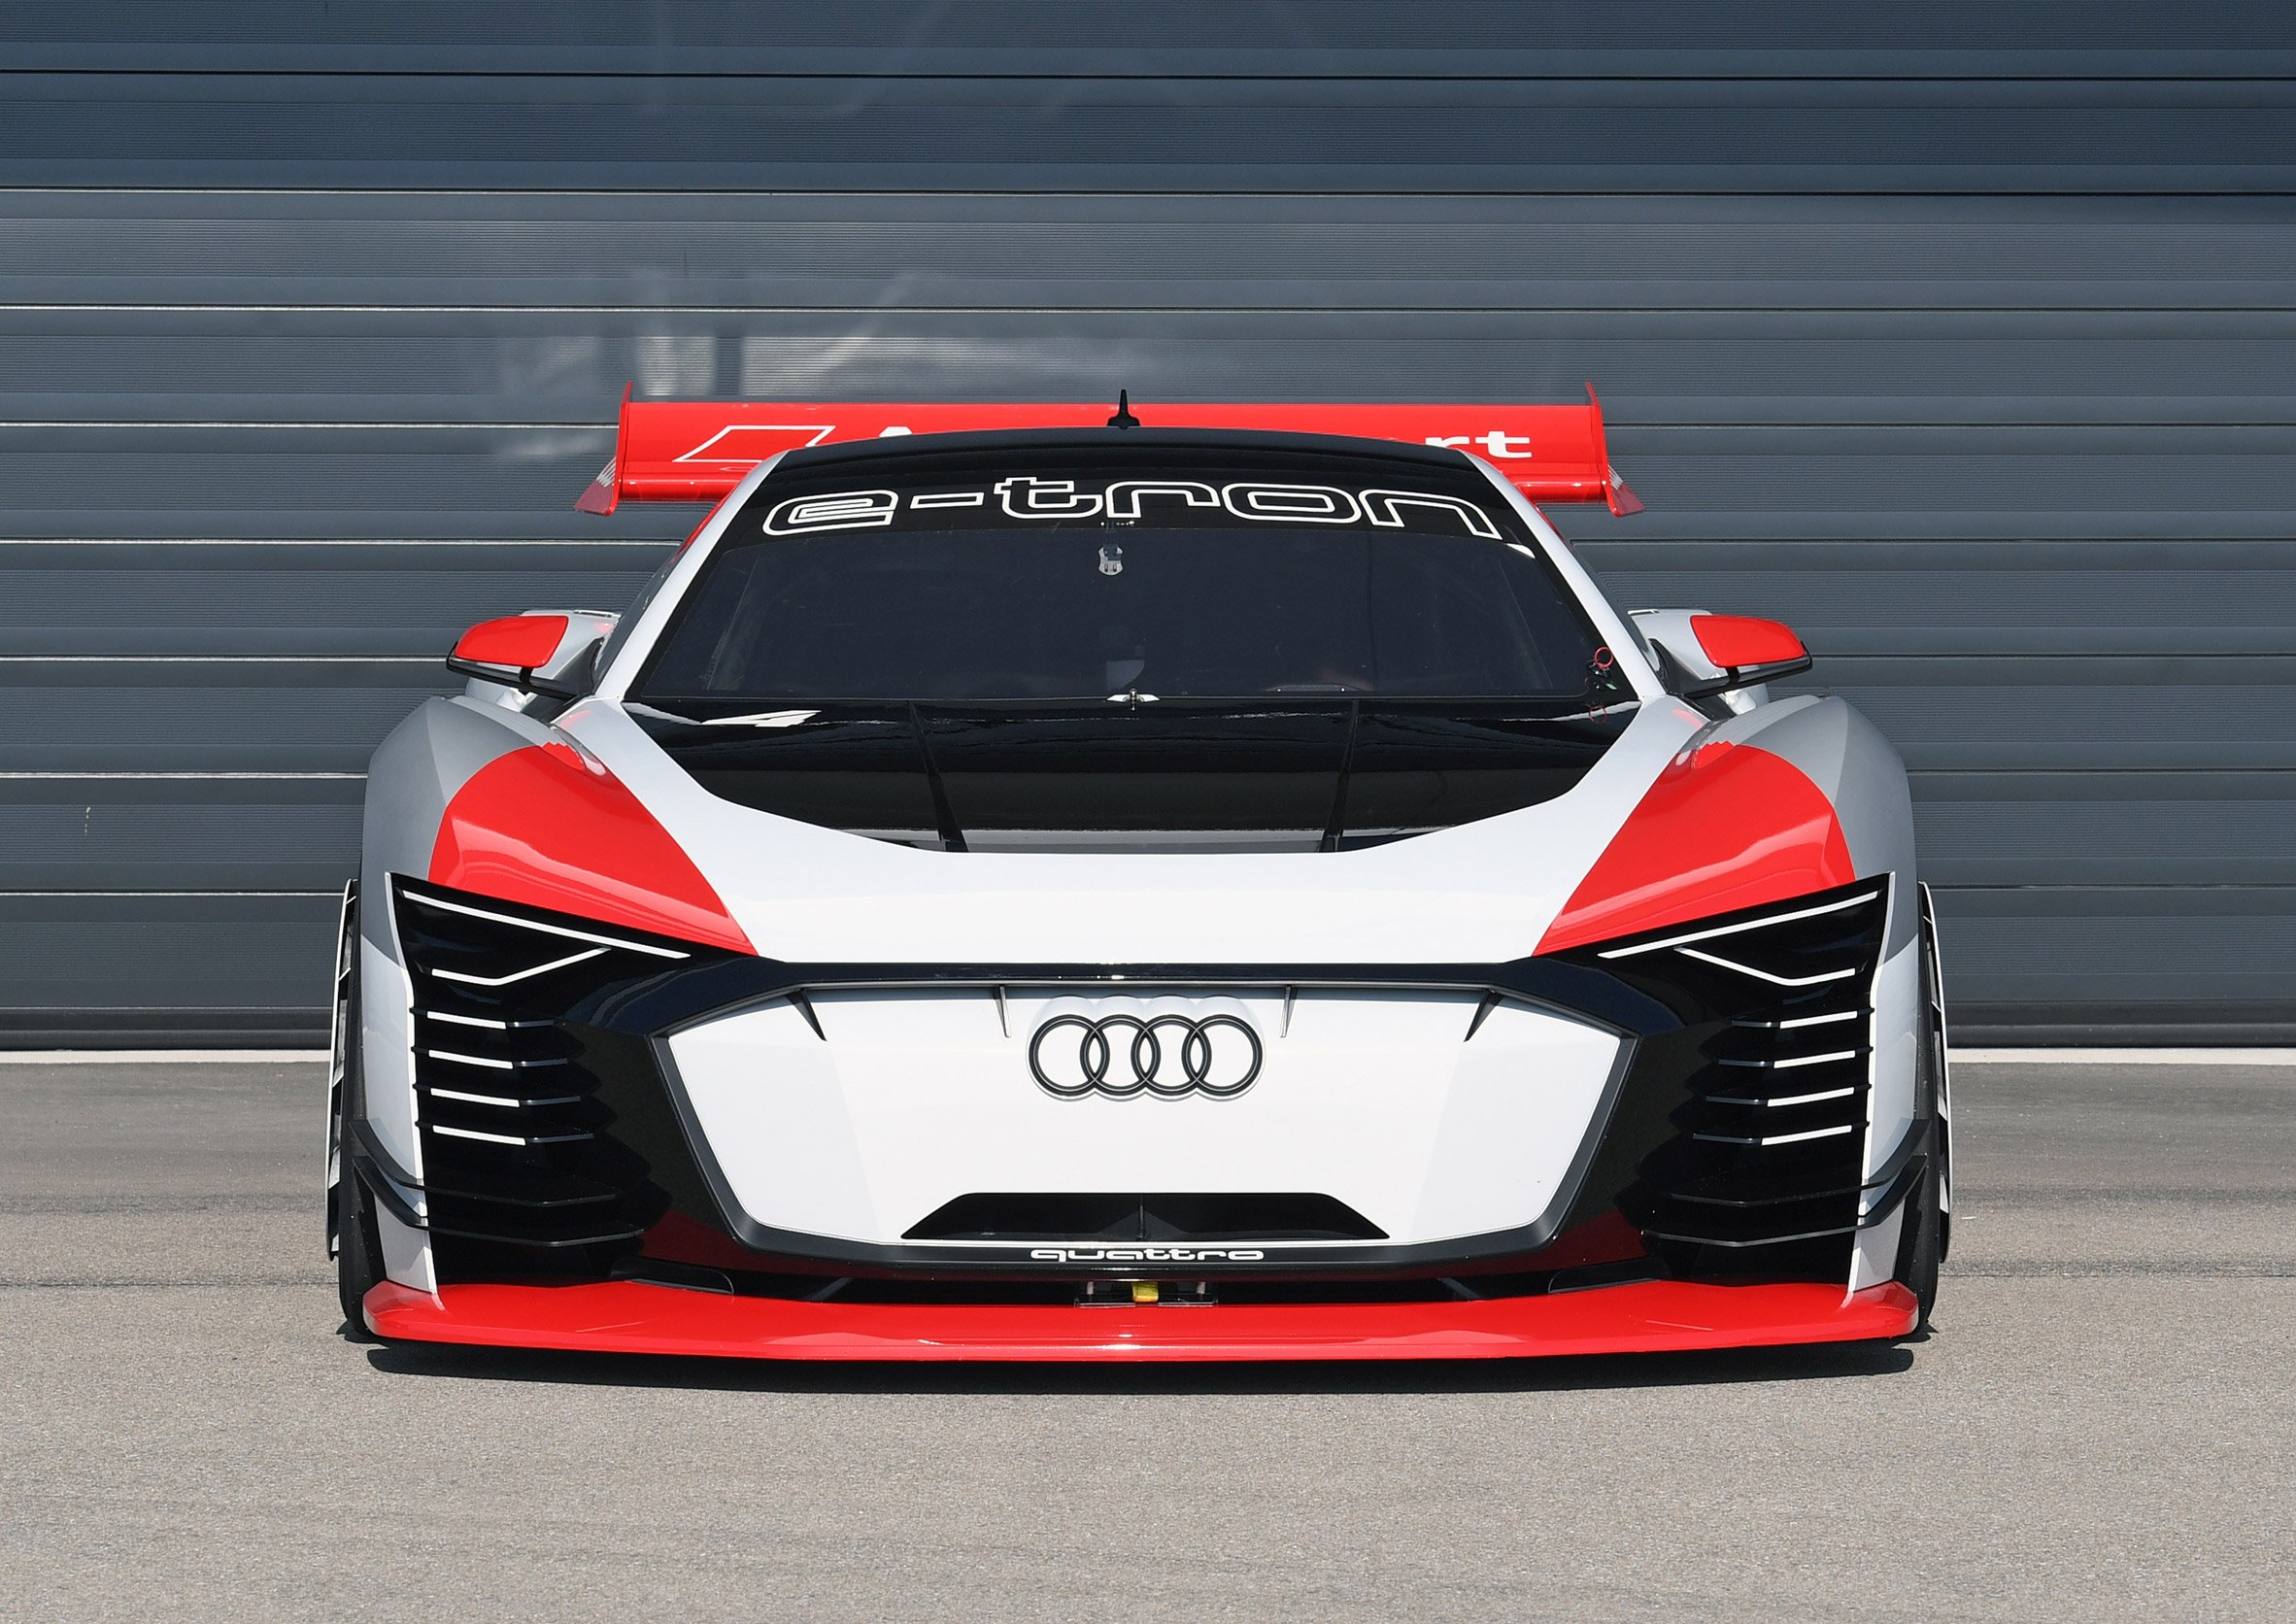 Audi makes the virtual reality with real-life Gran Turismo car